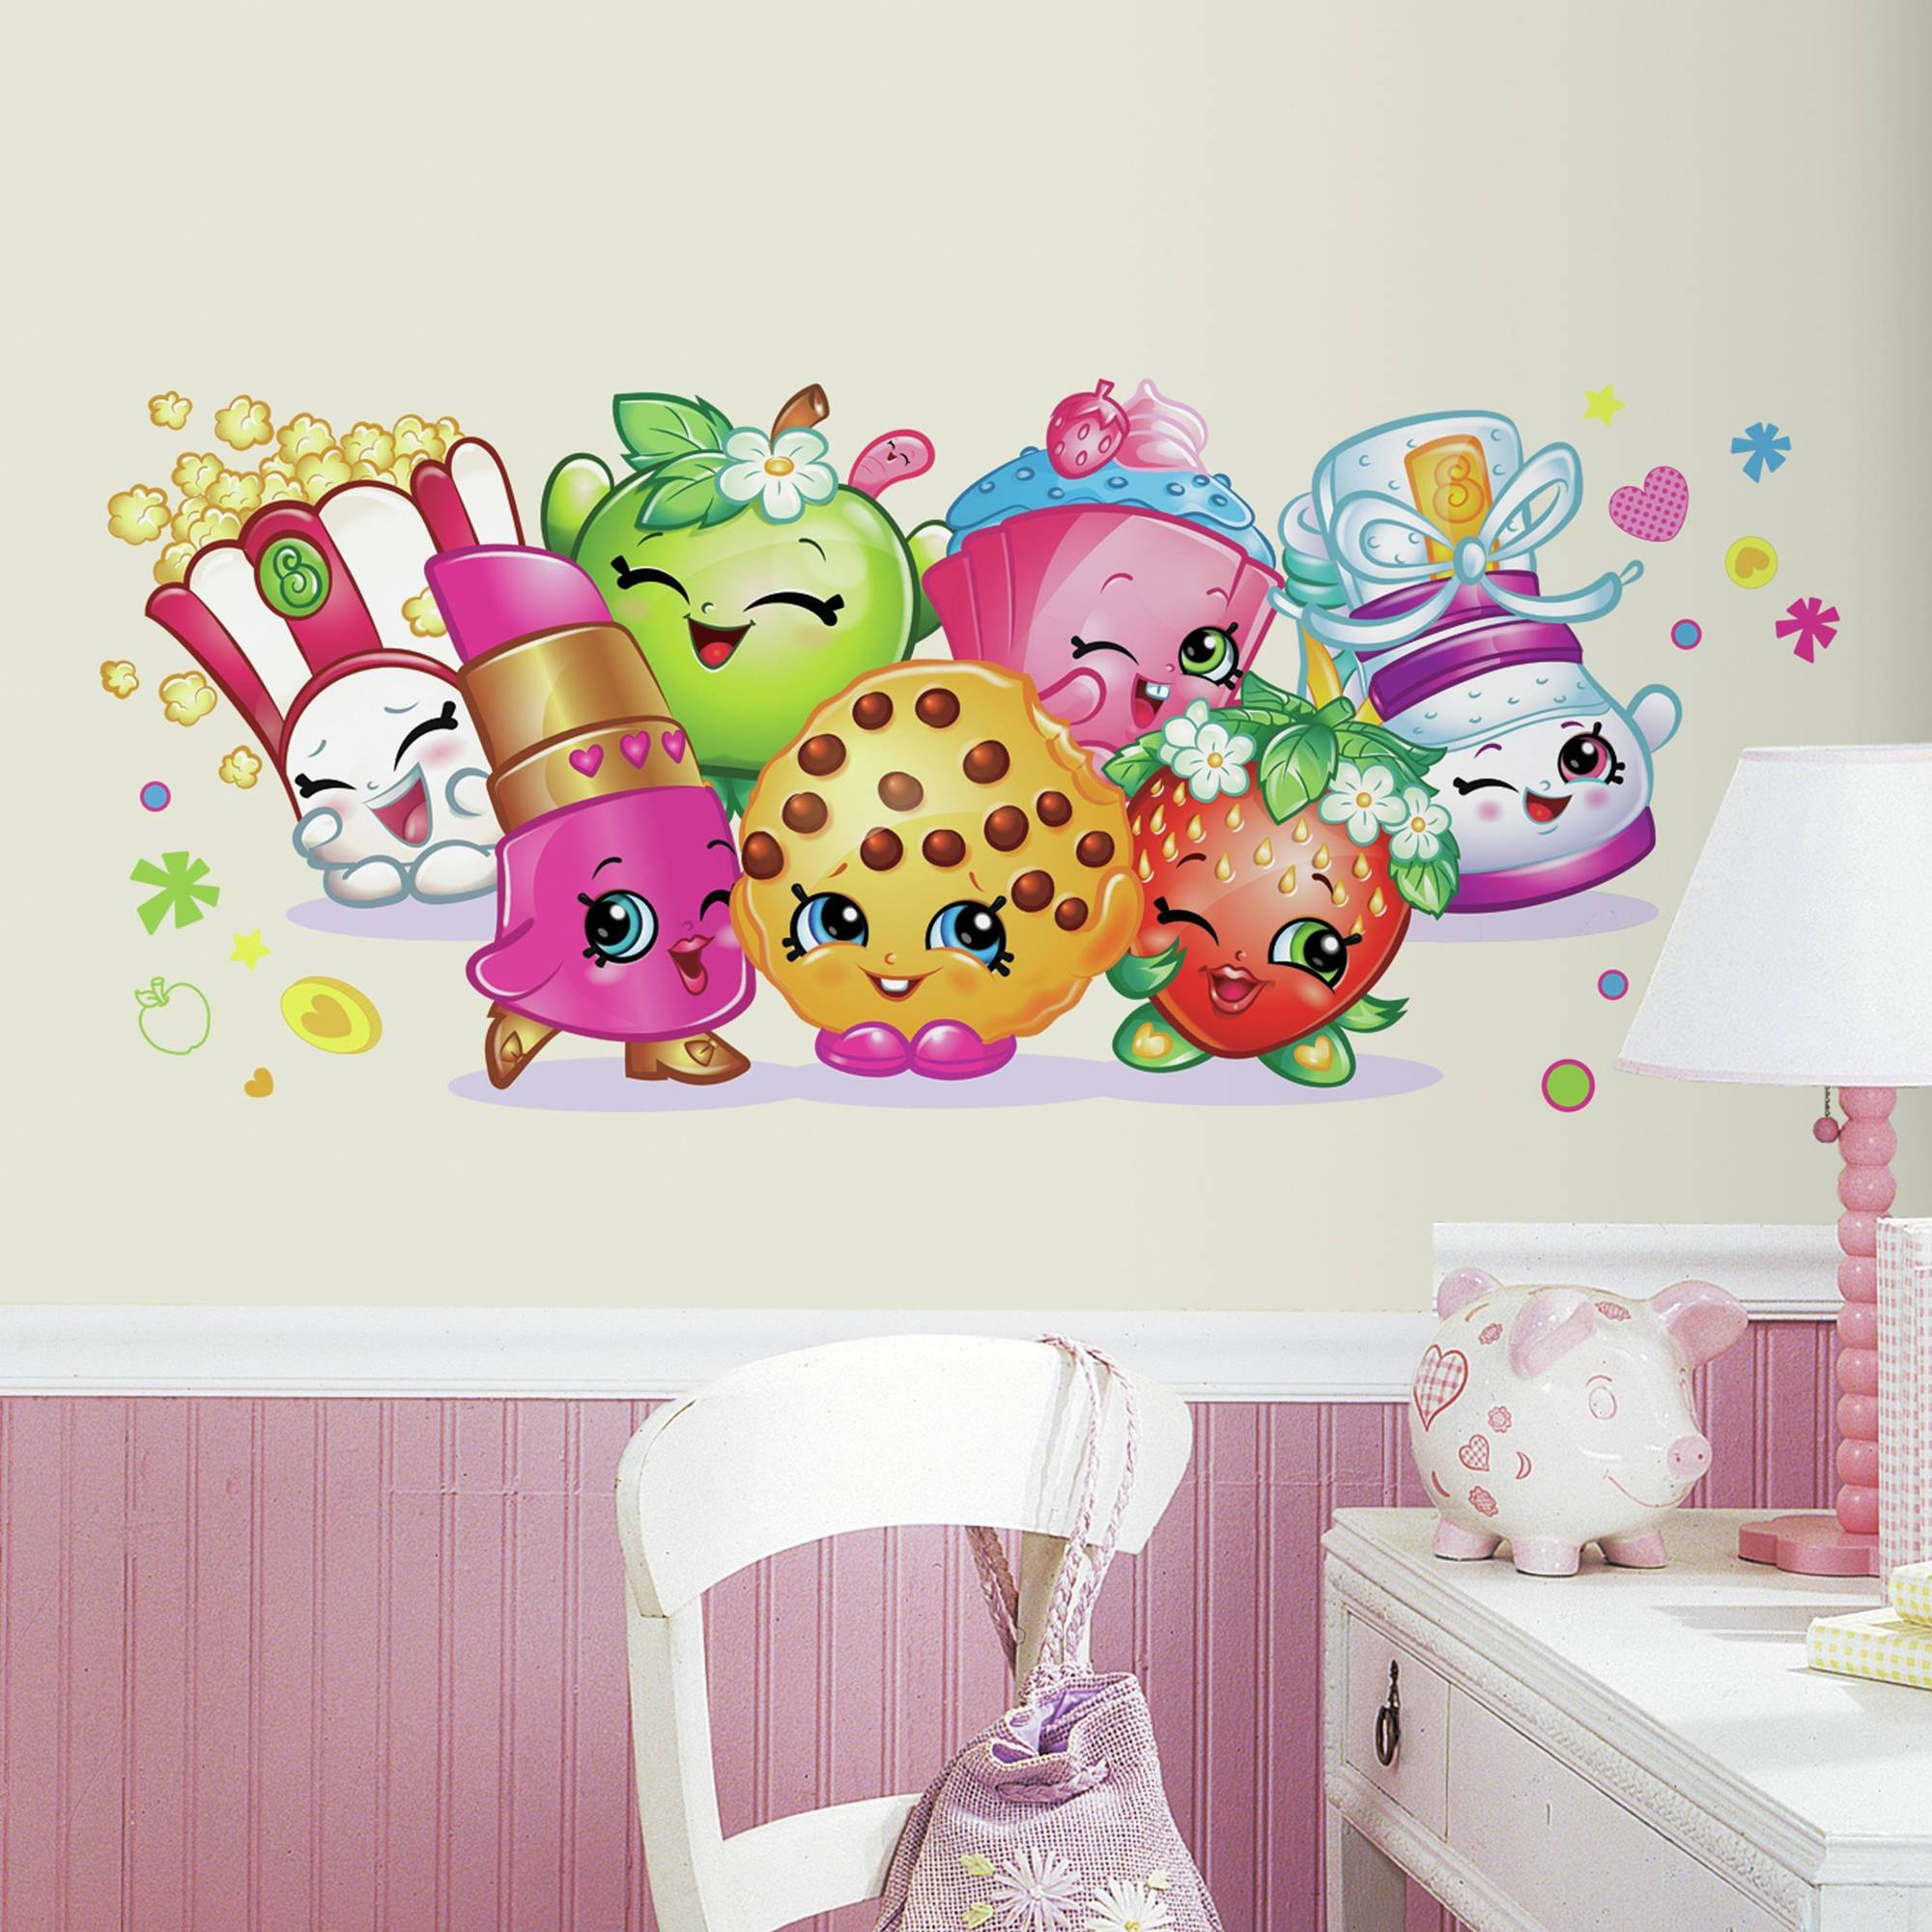 Roommates Shopkins Burst Peel And Stick Giant Wall Decals With Regard To Most Up To Date Walmart Wall Stickers (View 6 of 25)